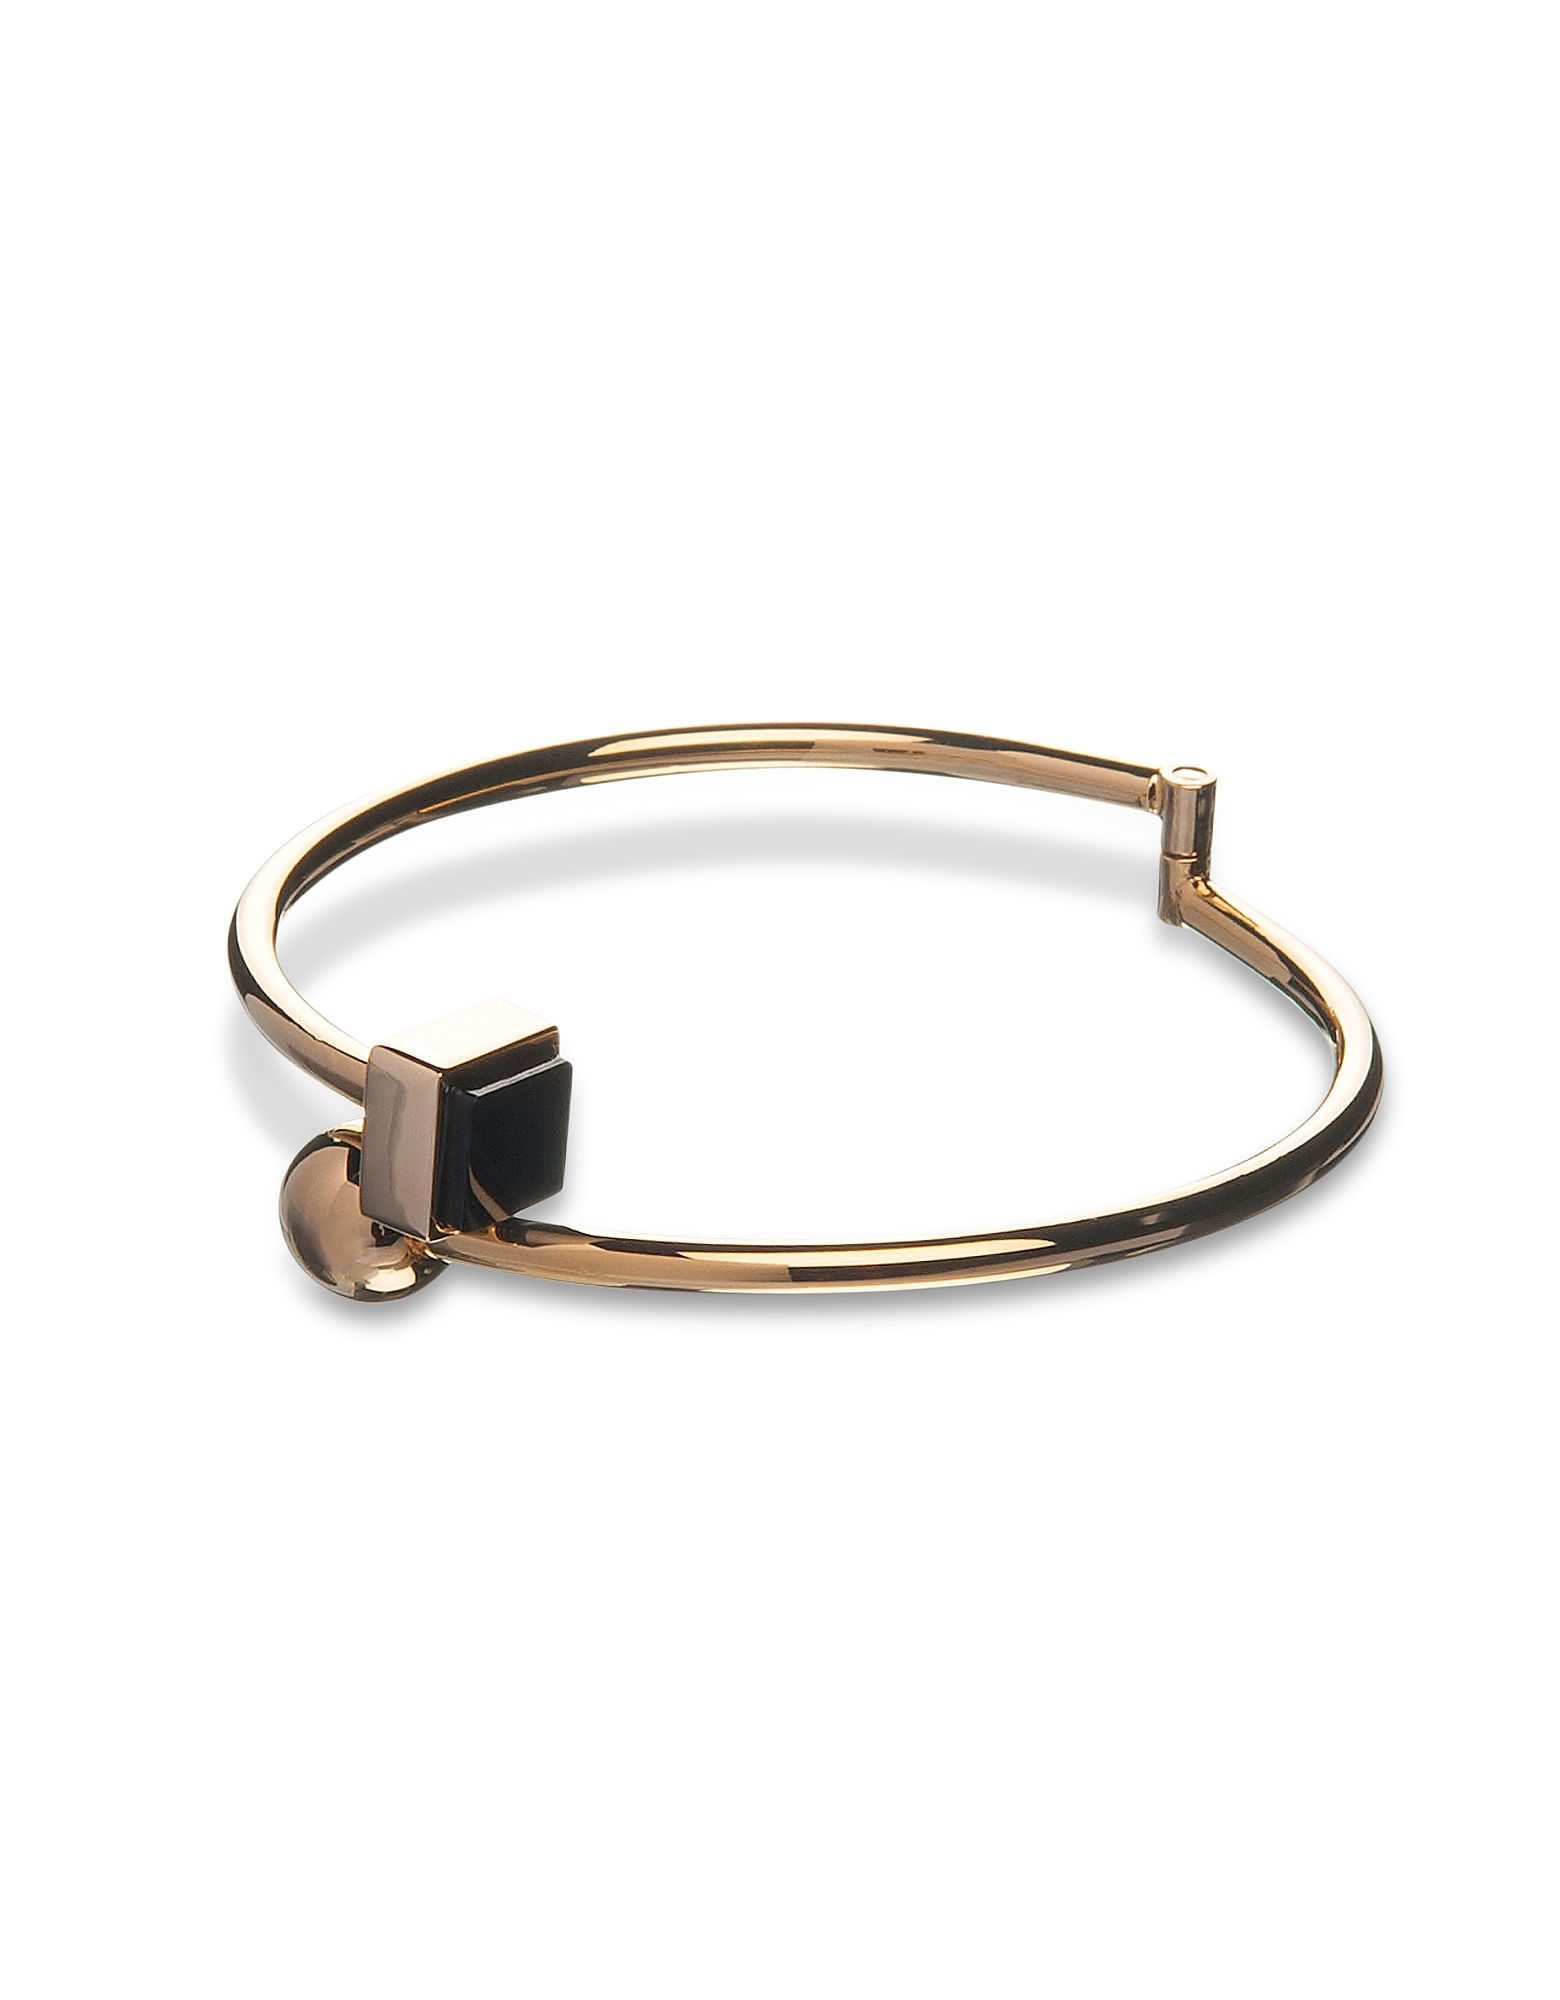 Egotique Bracelets, Arlequin Golden Brass Thin Bangle w/Black Stone